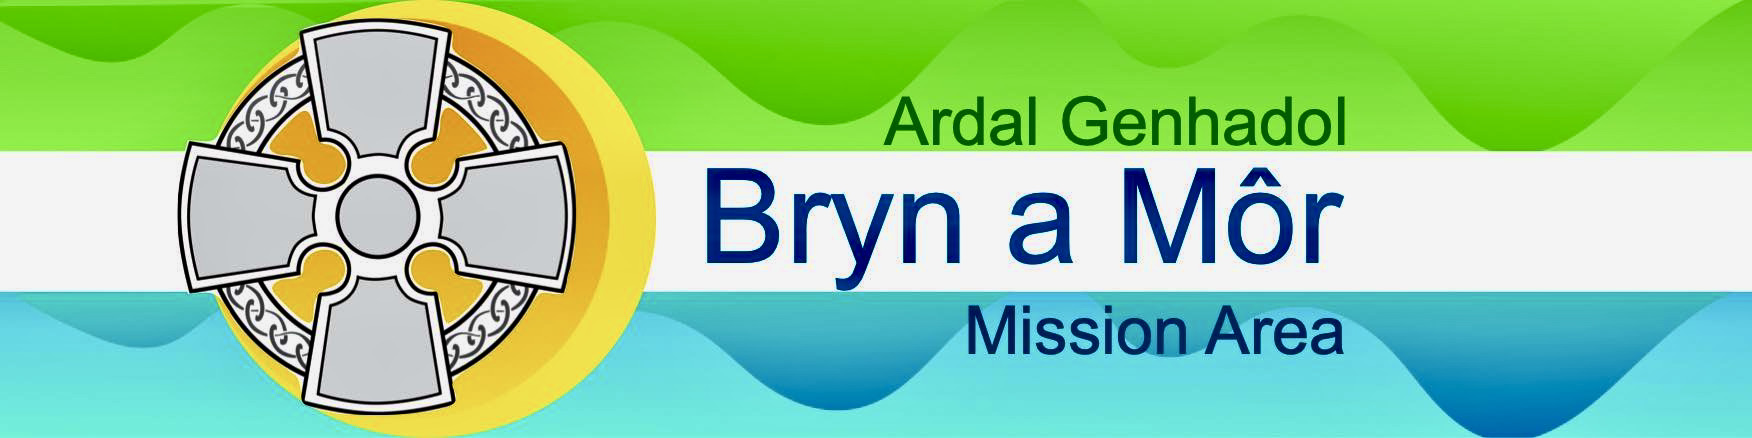 A 4 colour background image  showing the Bryn a Mor Mission Area Logo.